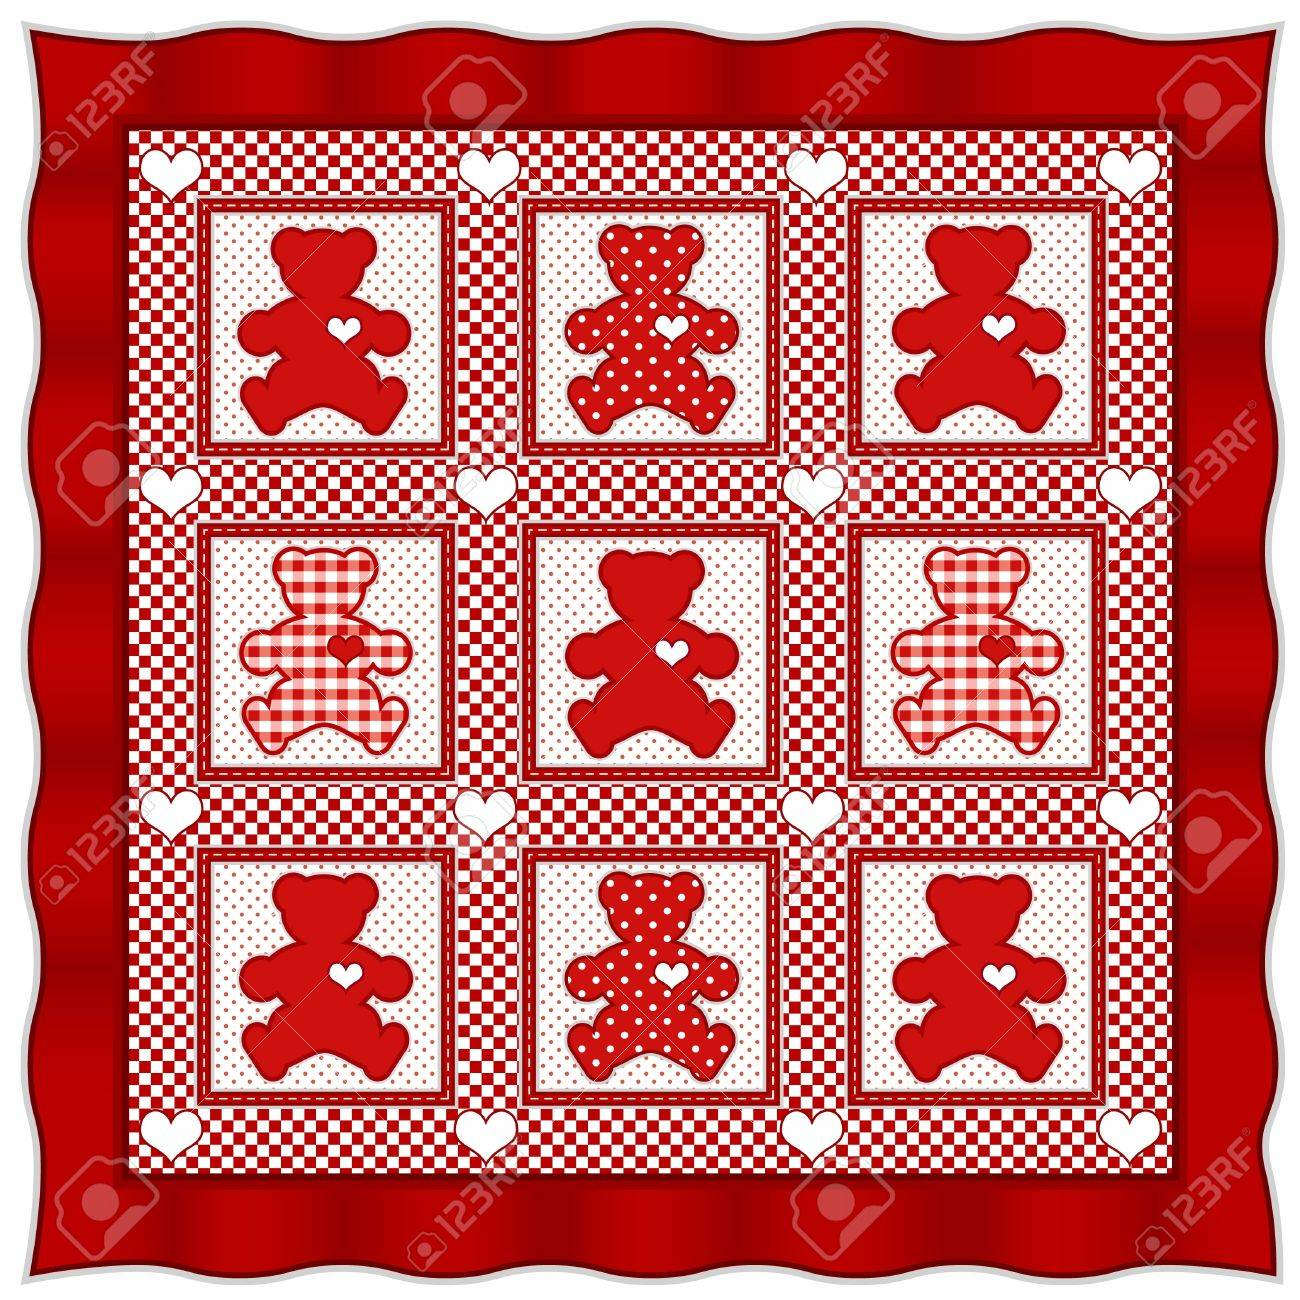 Teddy Bear Quilt Old Fashioned Baby Quilt Pattern Valentine